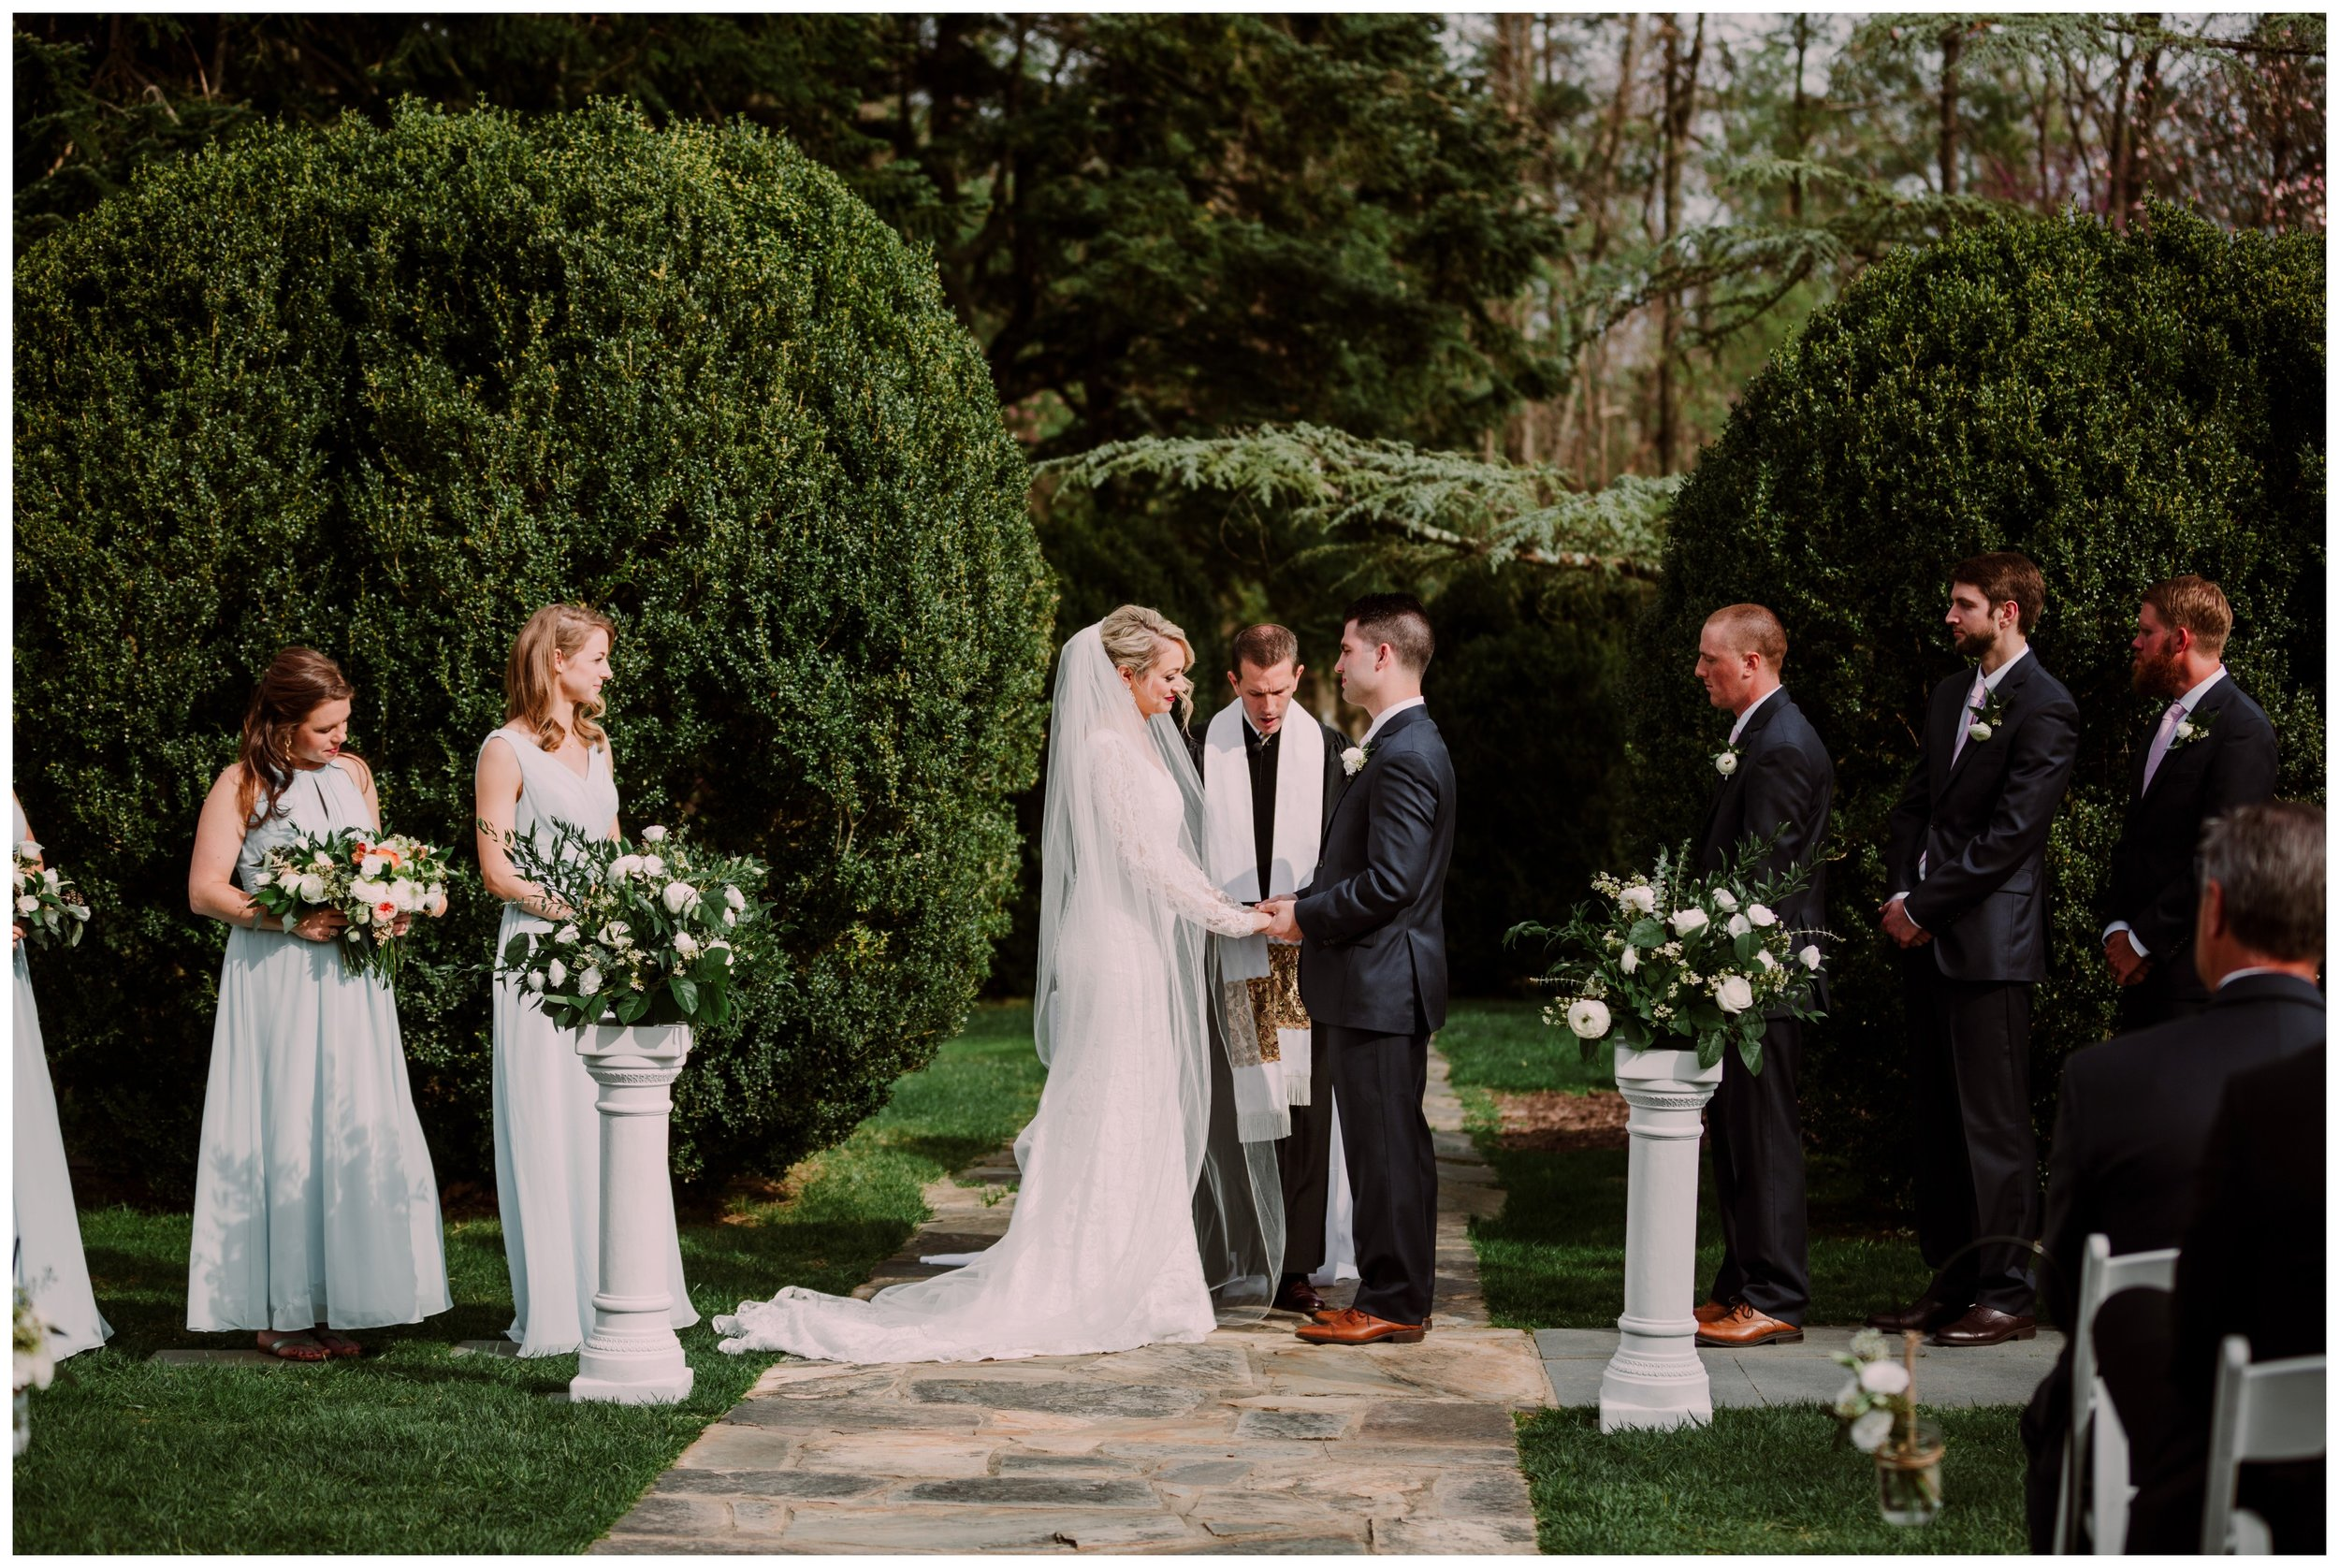 Andrea & Kyle | Traditional Virginia Rust Manor Wedding Highlights | Virginia Wedding Photographer-25.jpg